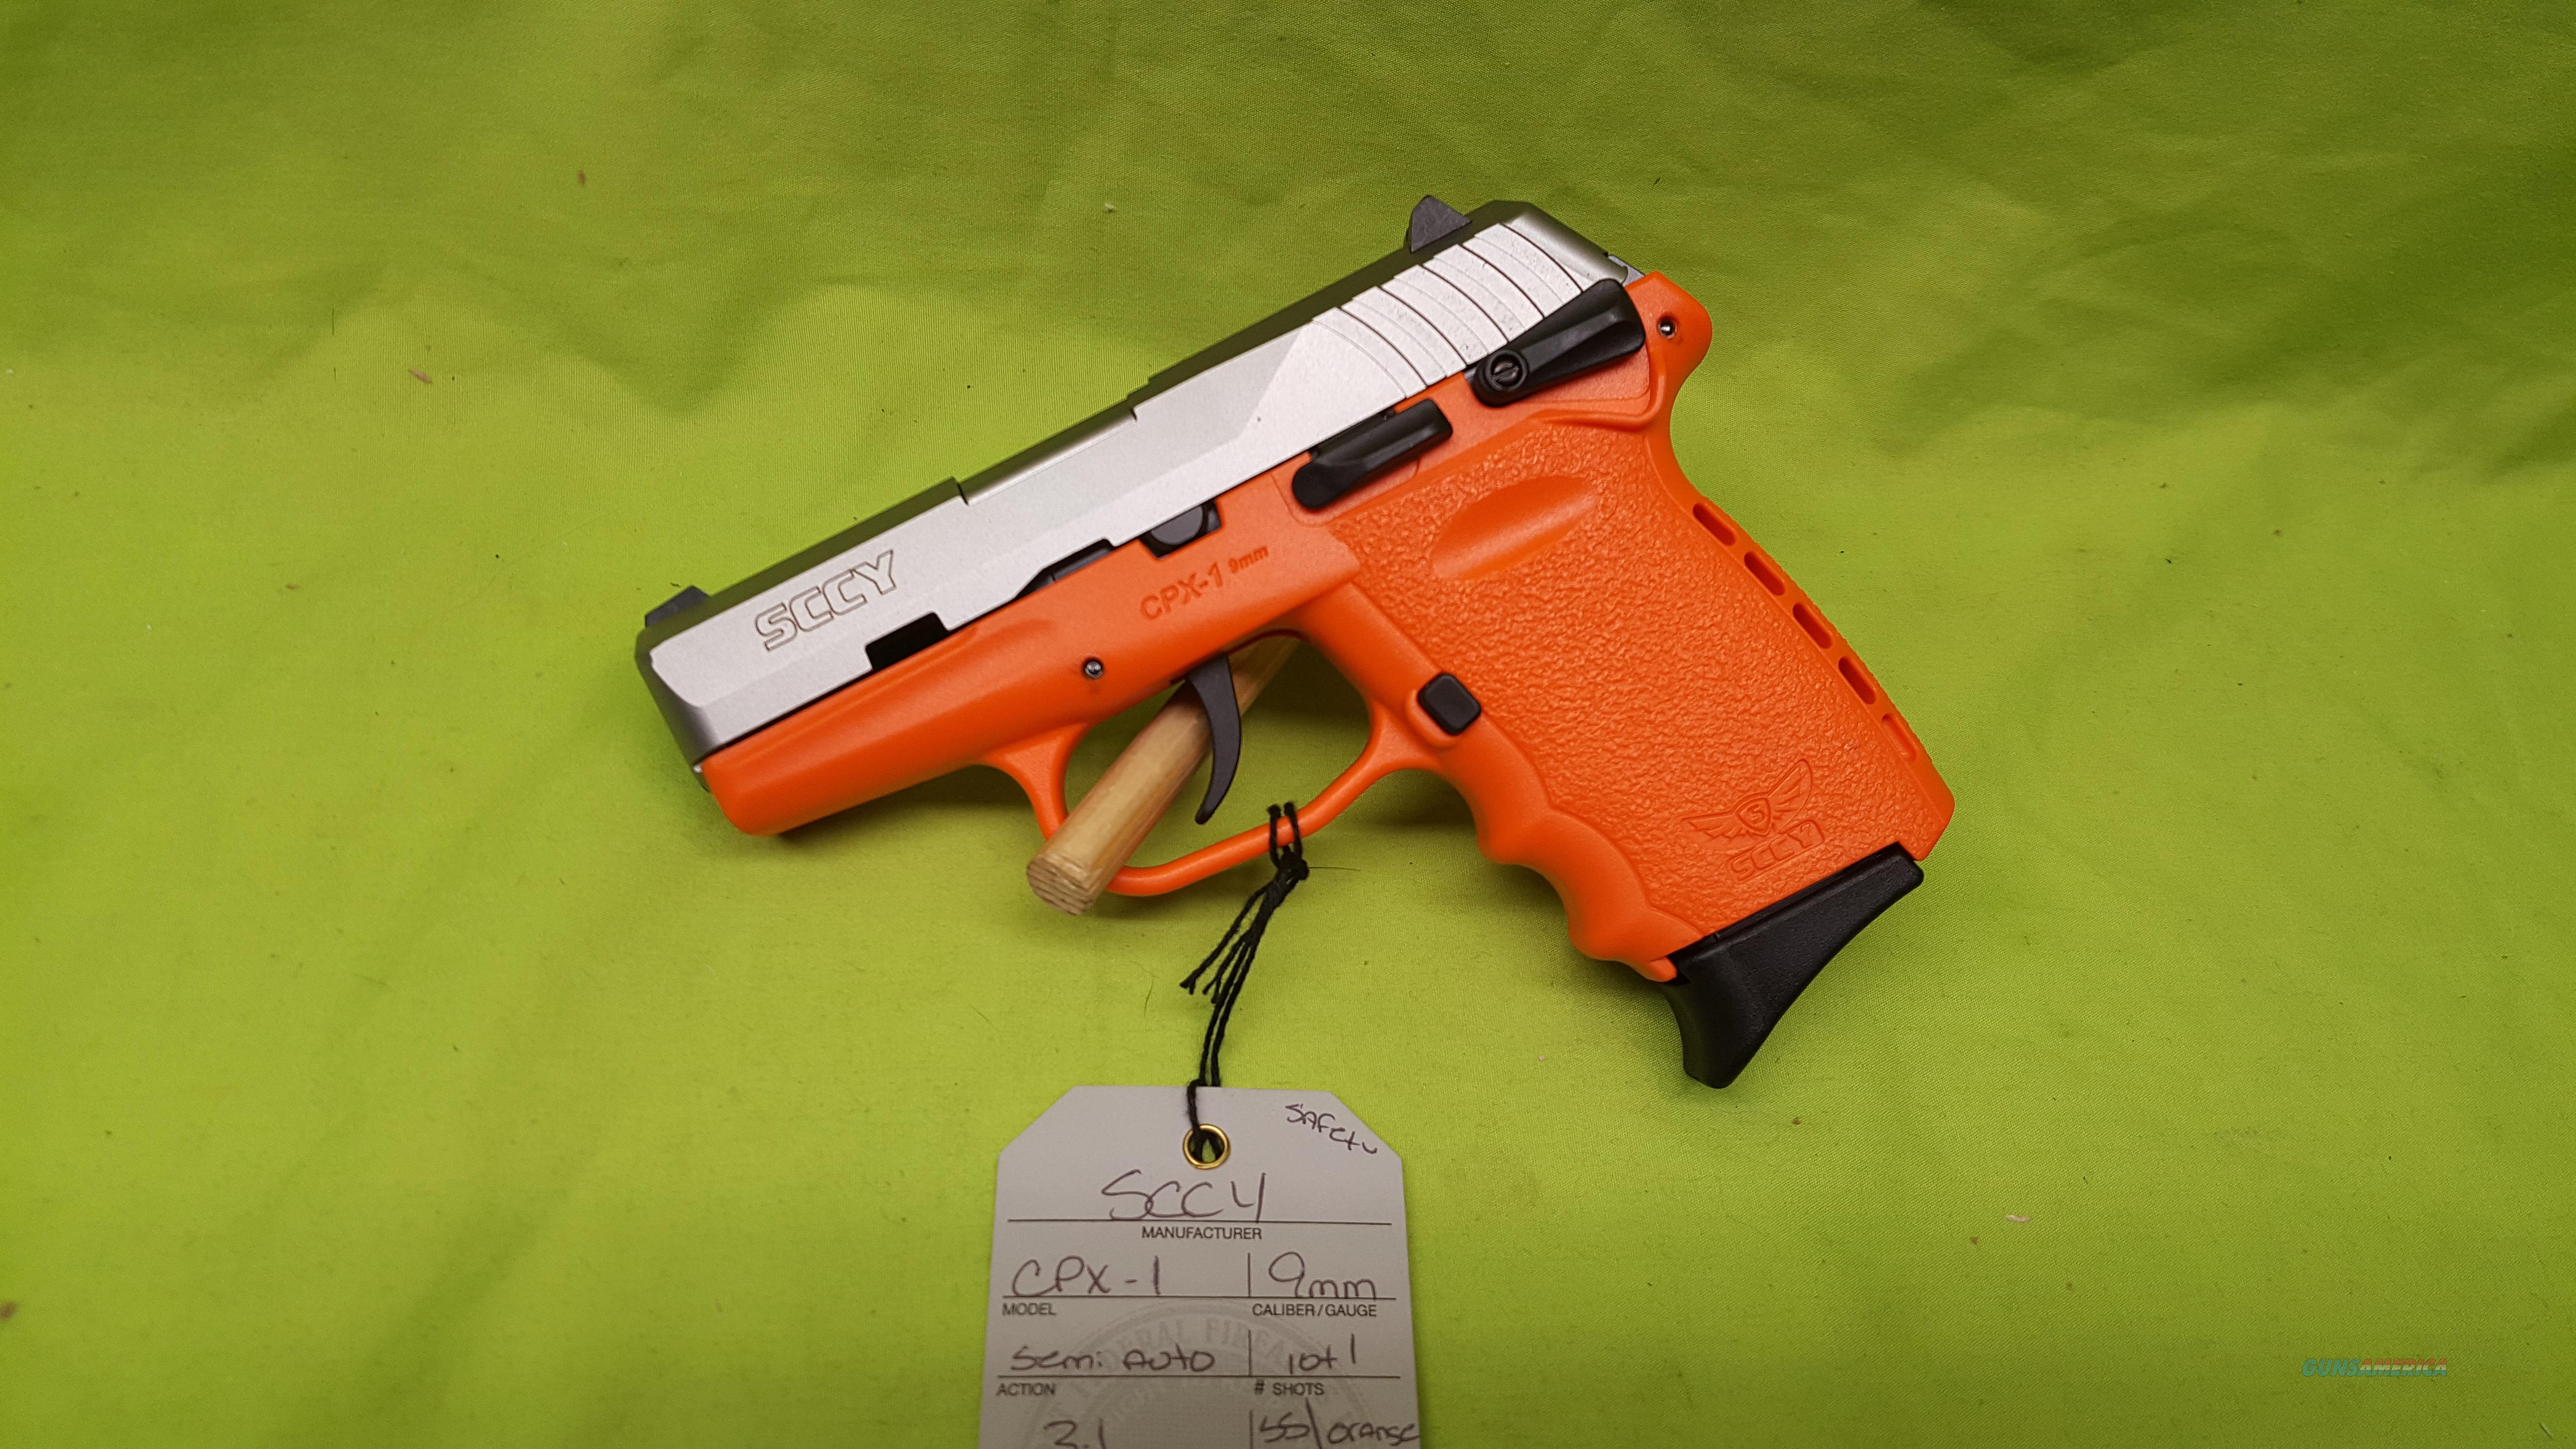 "SCCY CPX-1 CPX 1 CPX1 9 9MM 10RD SS / ORANGE 3.1"" SAFETY  Guns > Pistols > SCCY Pistols > CPX1"